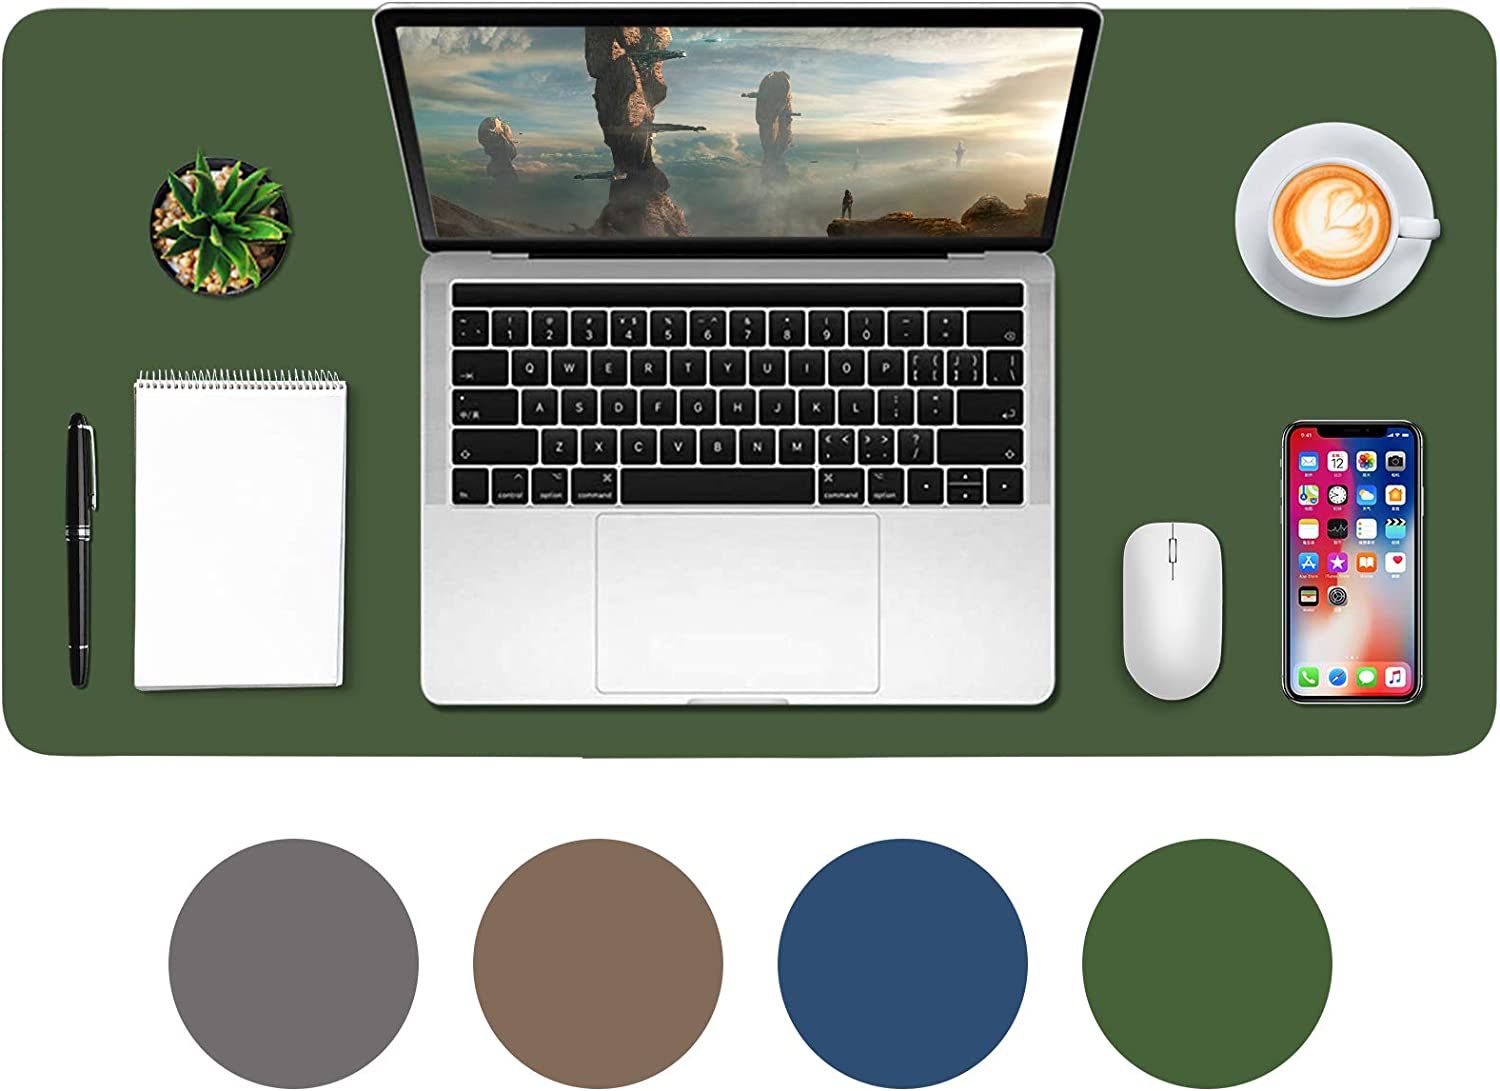 "Desk mat for Kids,31.5"" x 15.7"" Leather Desk blotter,Desk Pad Protector,Mouse Pad,Office Desk Mat,Waterproof Desk Writing Pad for Office and Home-Army Green"